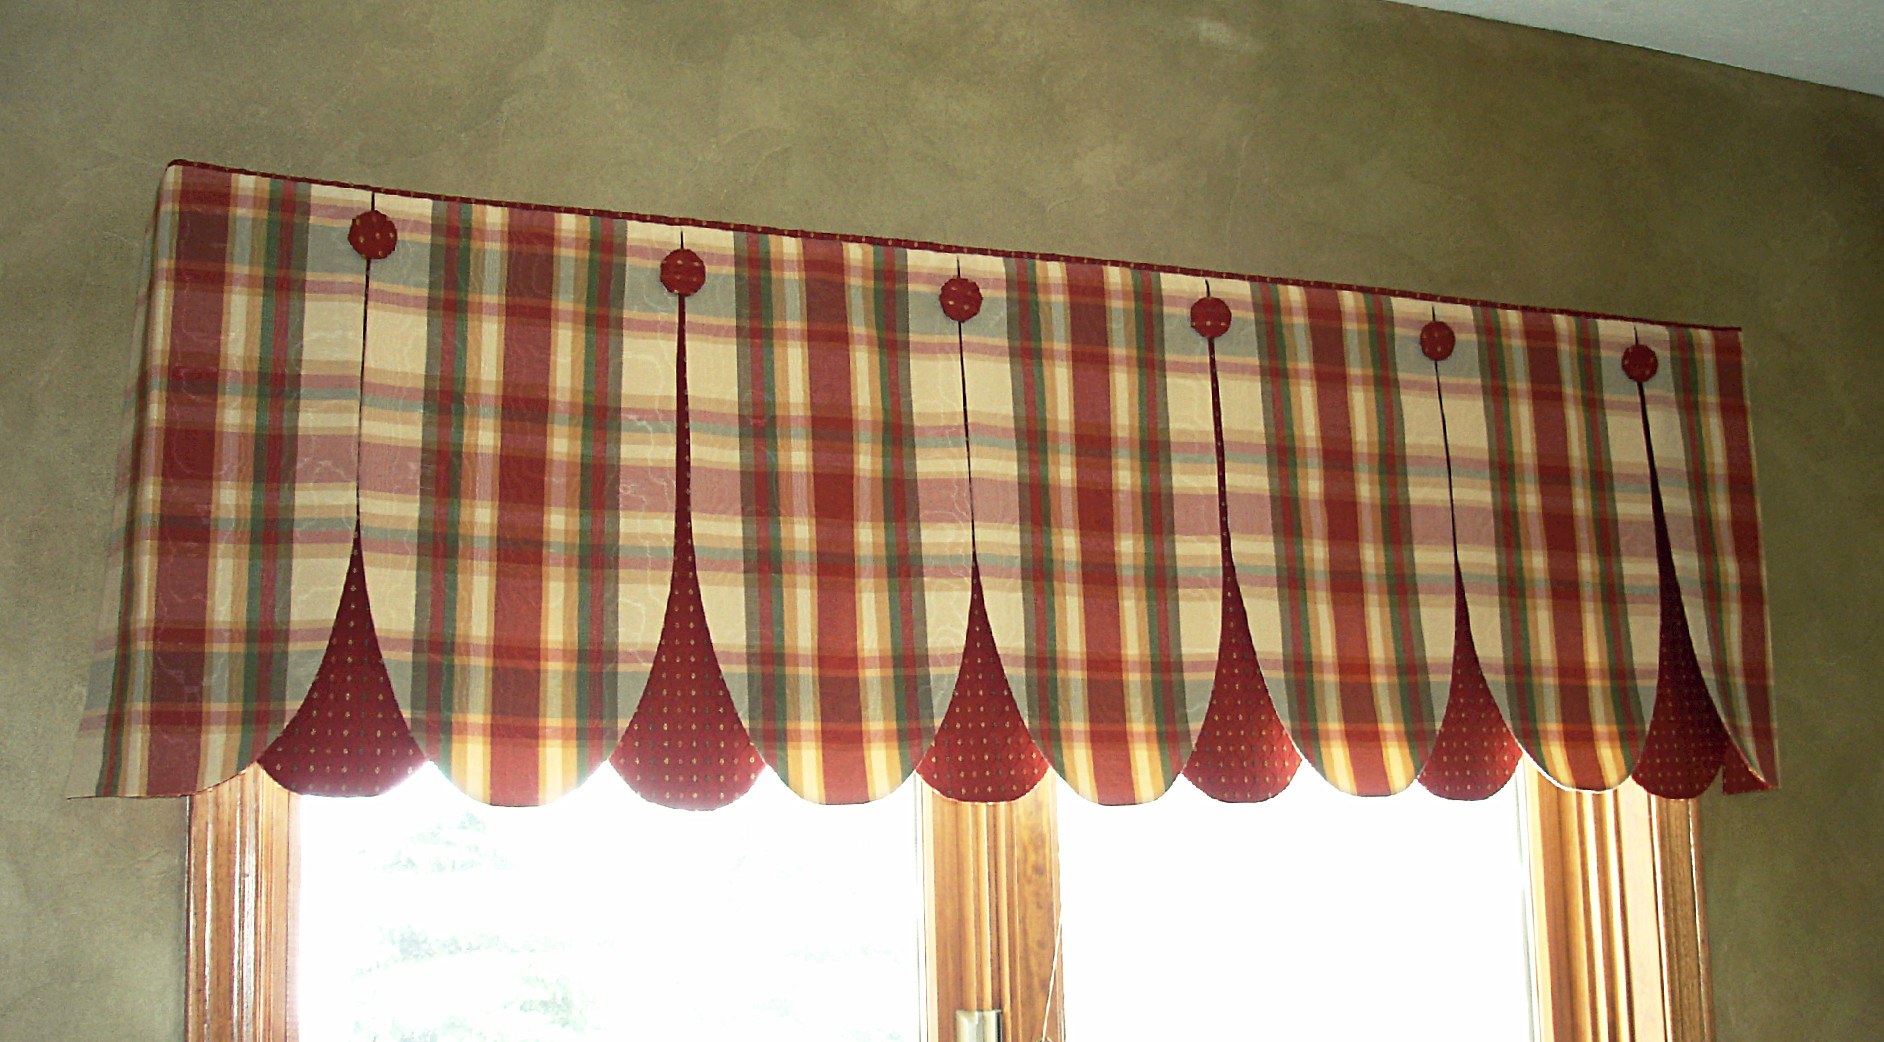 kitchen-curtains-valances-target-but-kitchen-valance-target-about-kitchen-valance